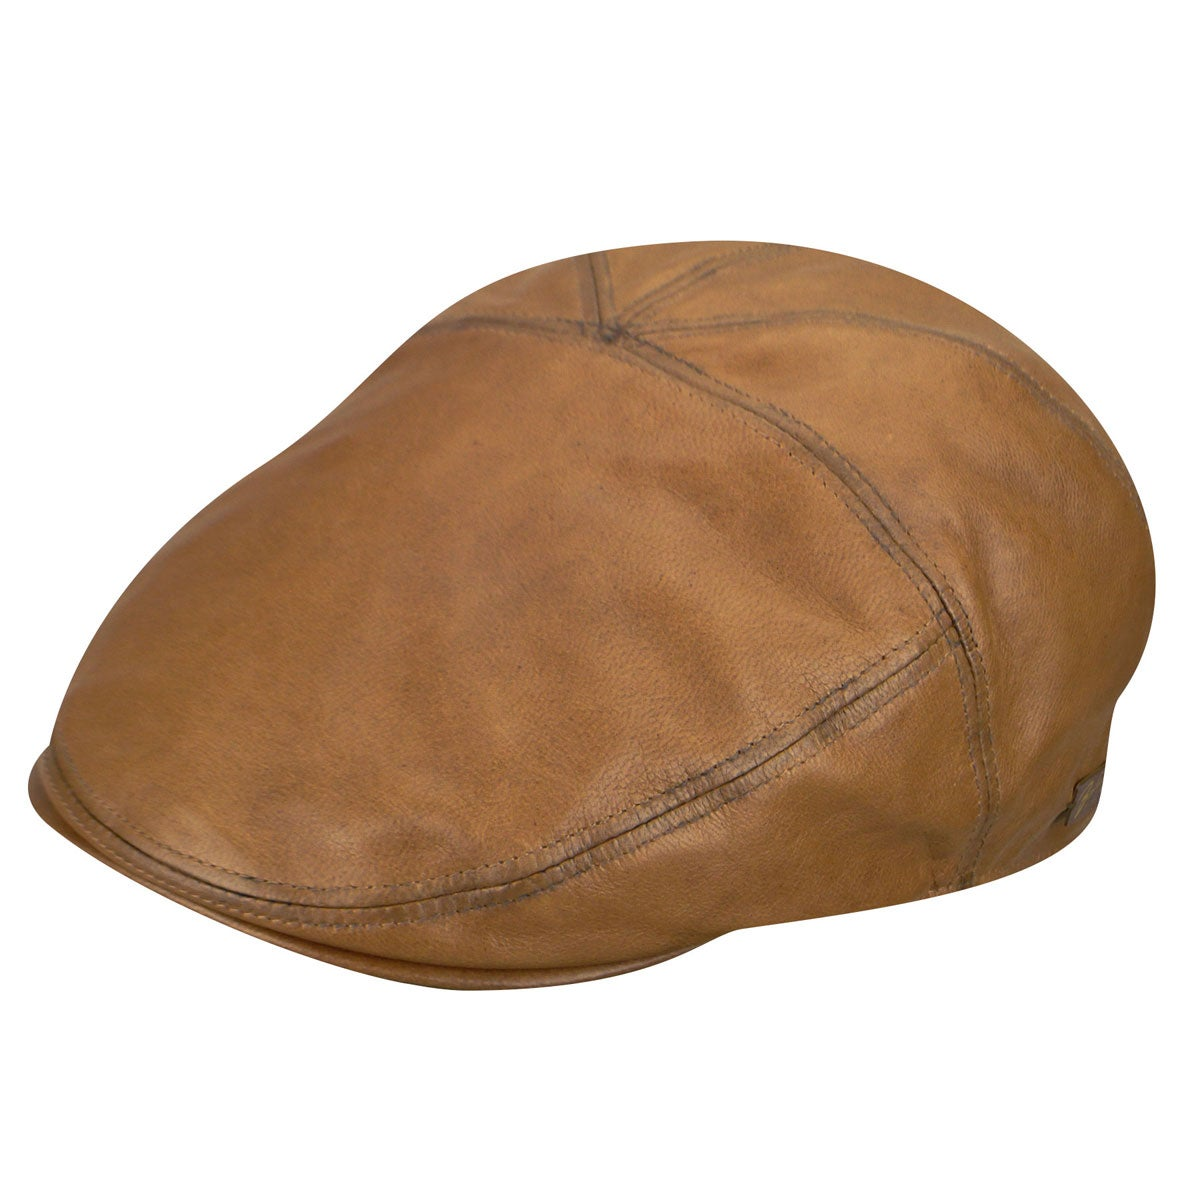 Bailey of Hollywood Glasby Cap in Scotch